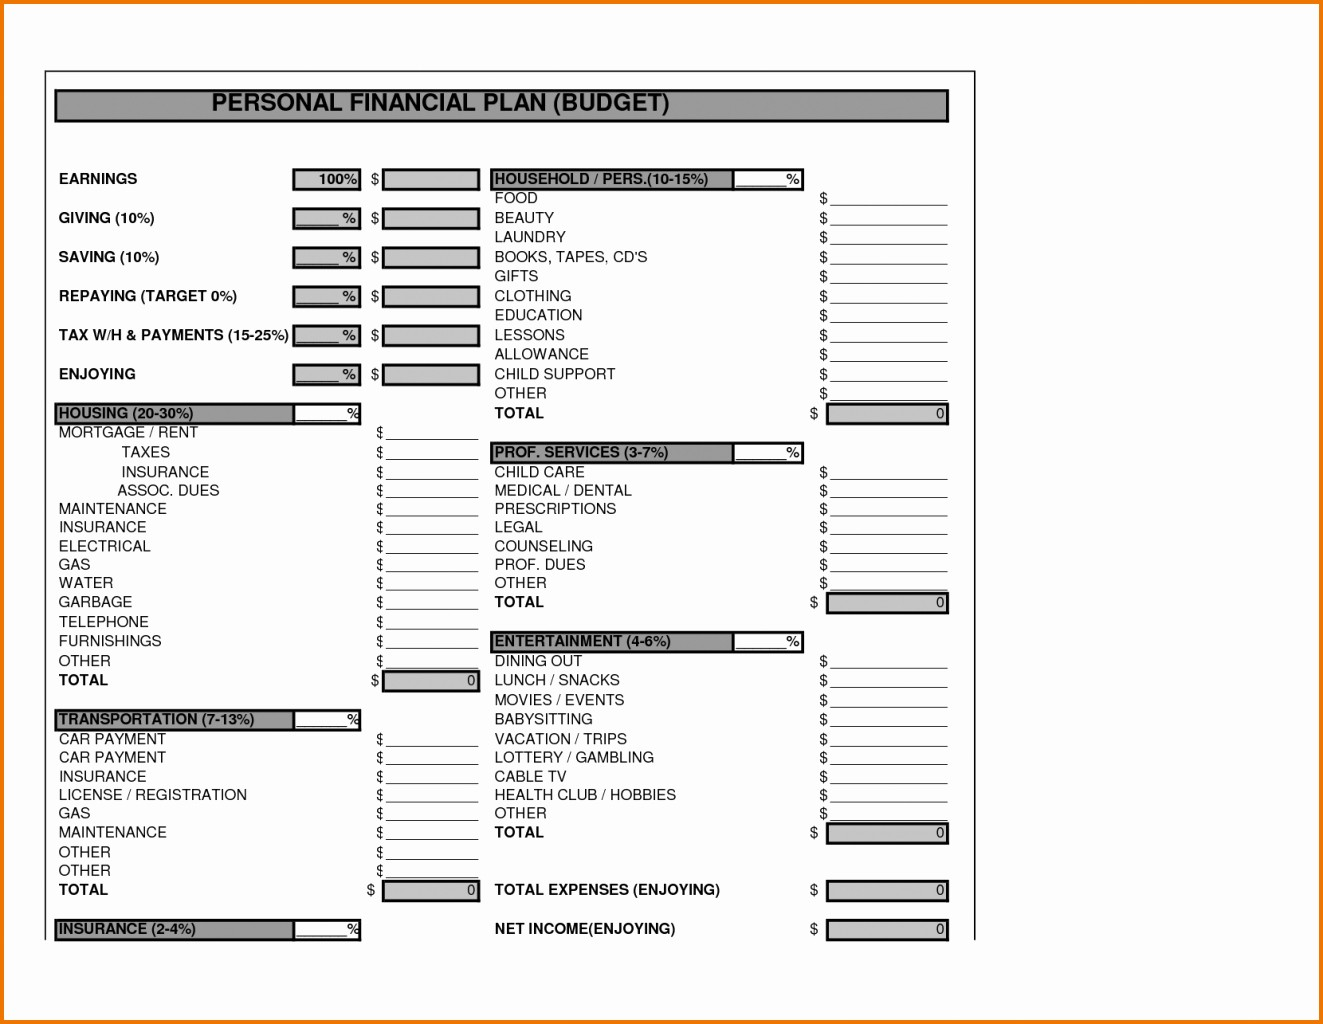 Business Plan Financial Plan Template Best Of Medical Billing Invoice Template Free Medical Invoice